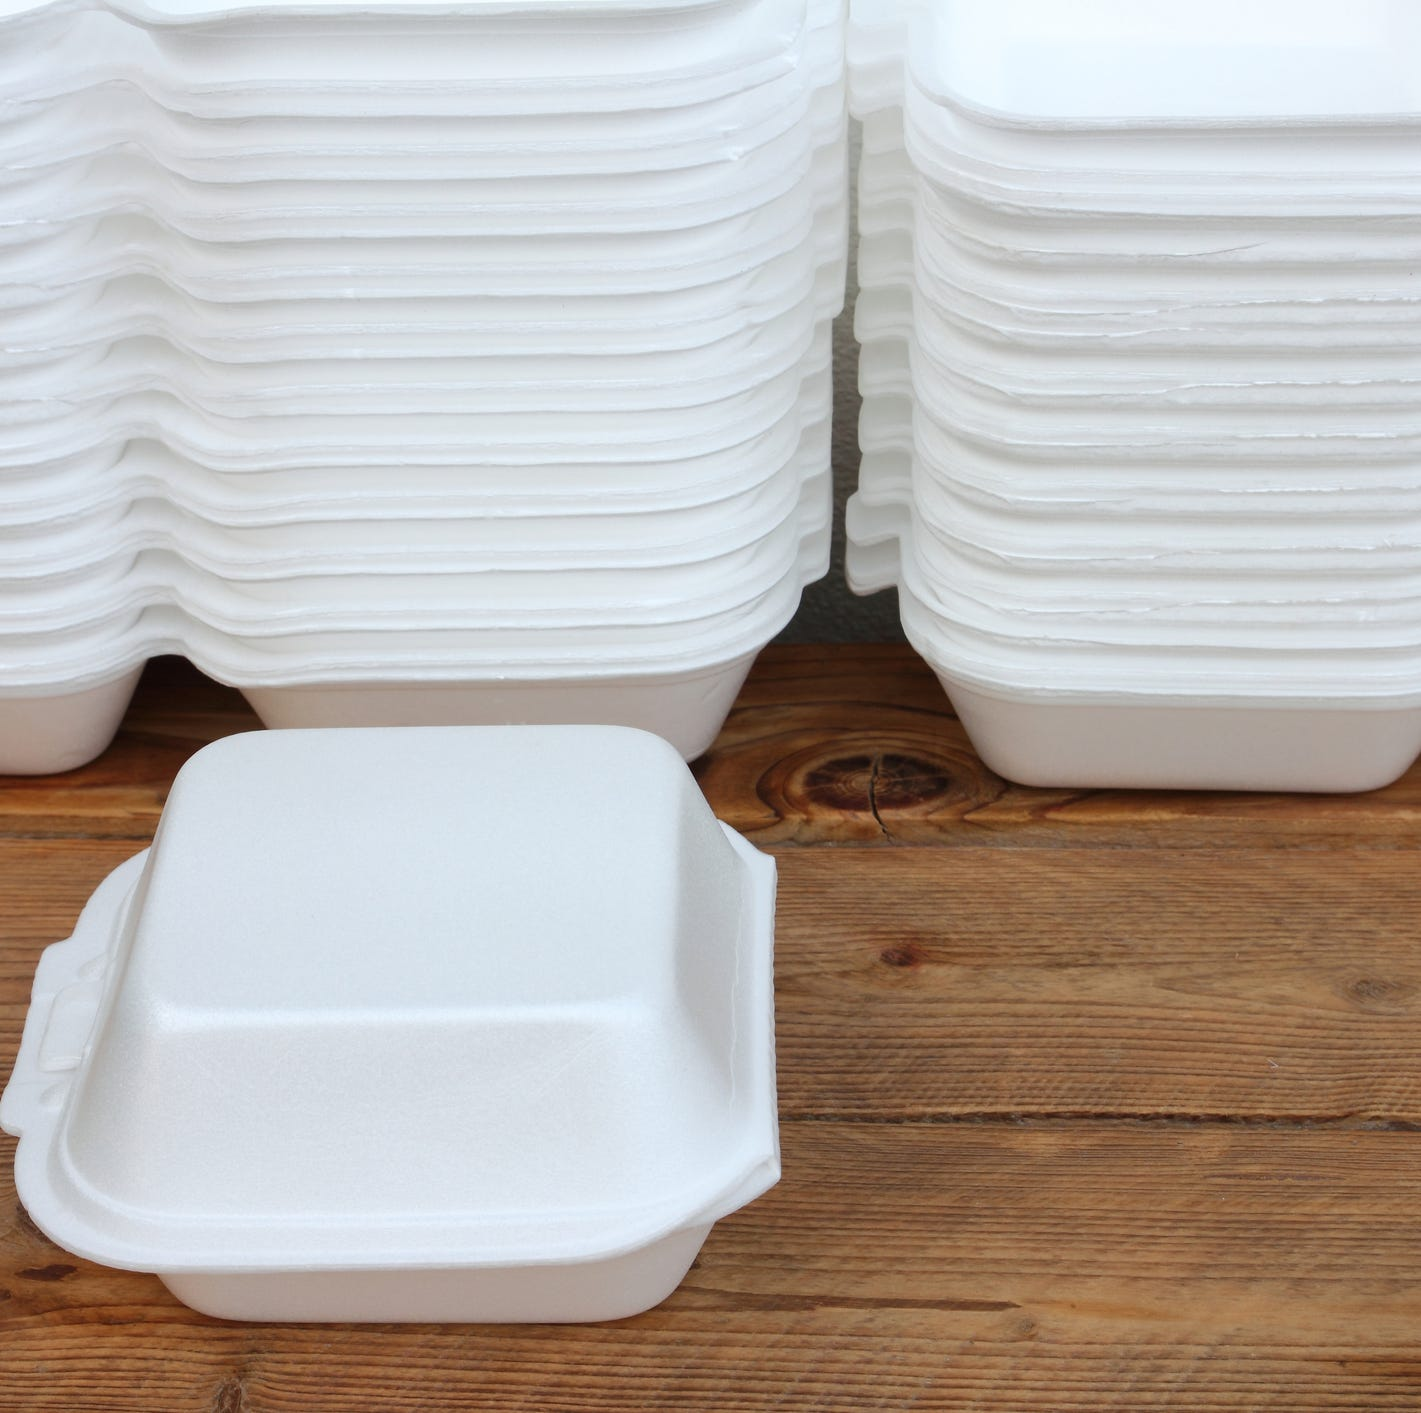 Foam takeout container ban passes Oregon House on second try